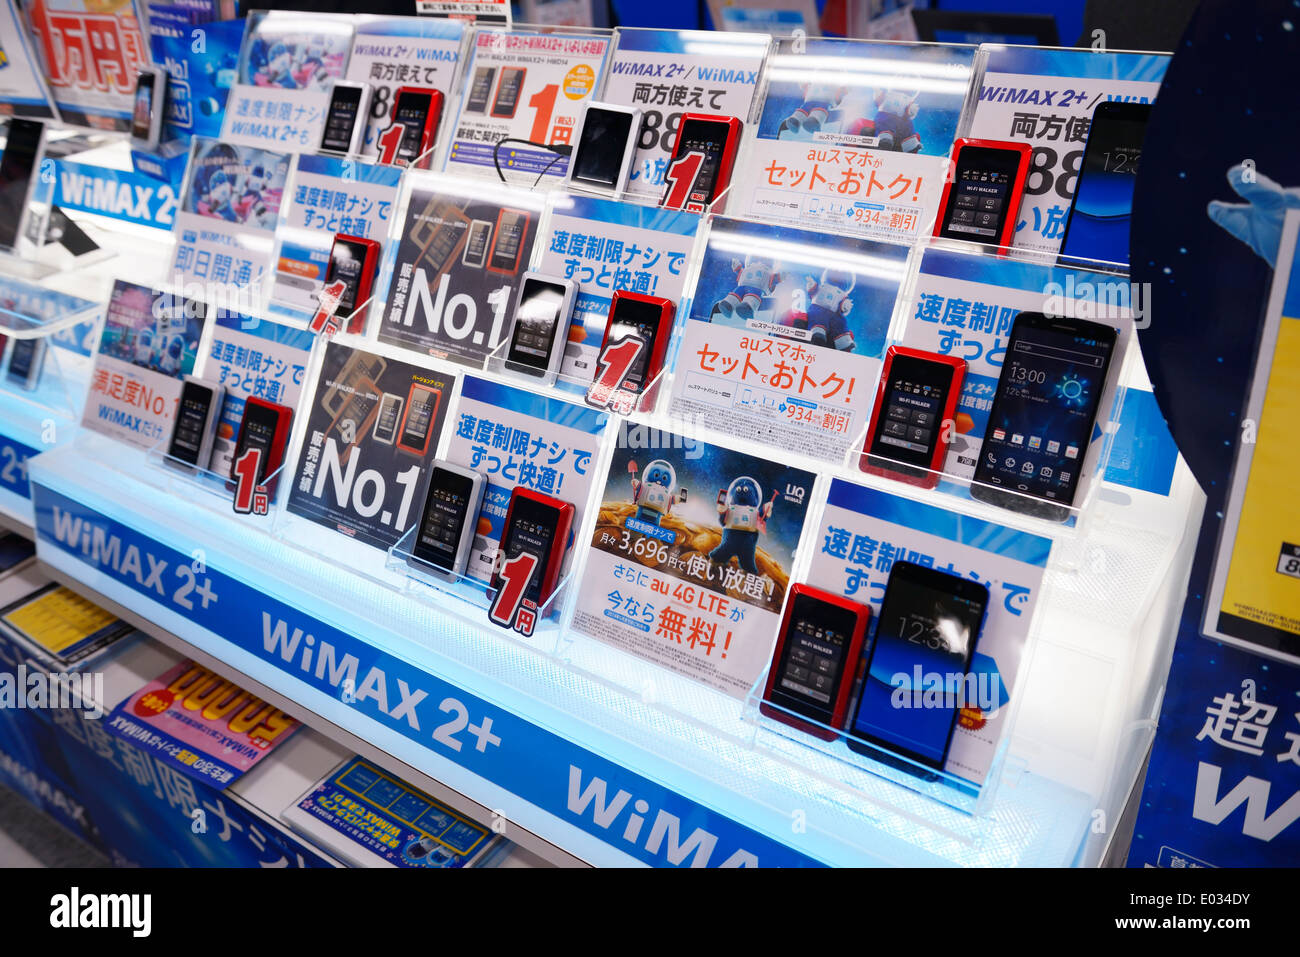 WiMAX 2 portable WiFi devices pocket WiFi, Wi-FI walker on store display, Tokyo, Japan. - Stock Image